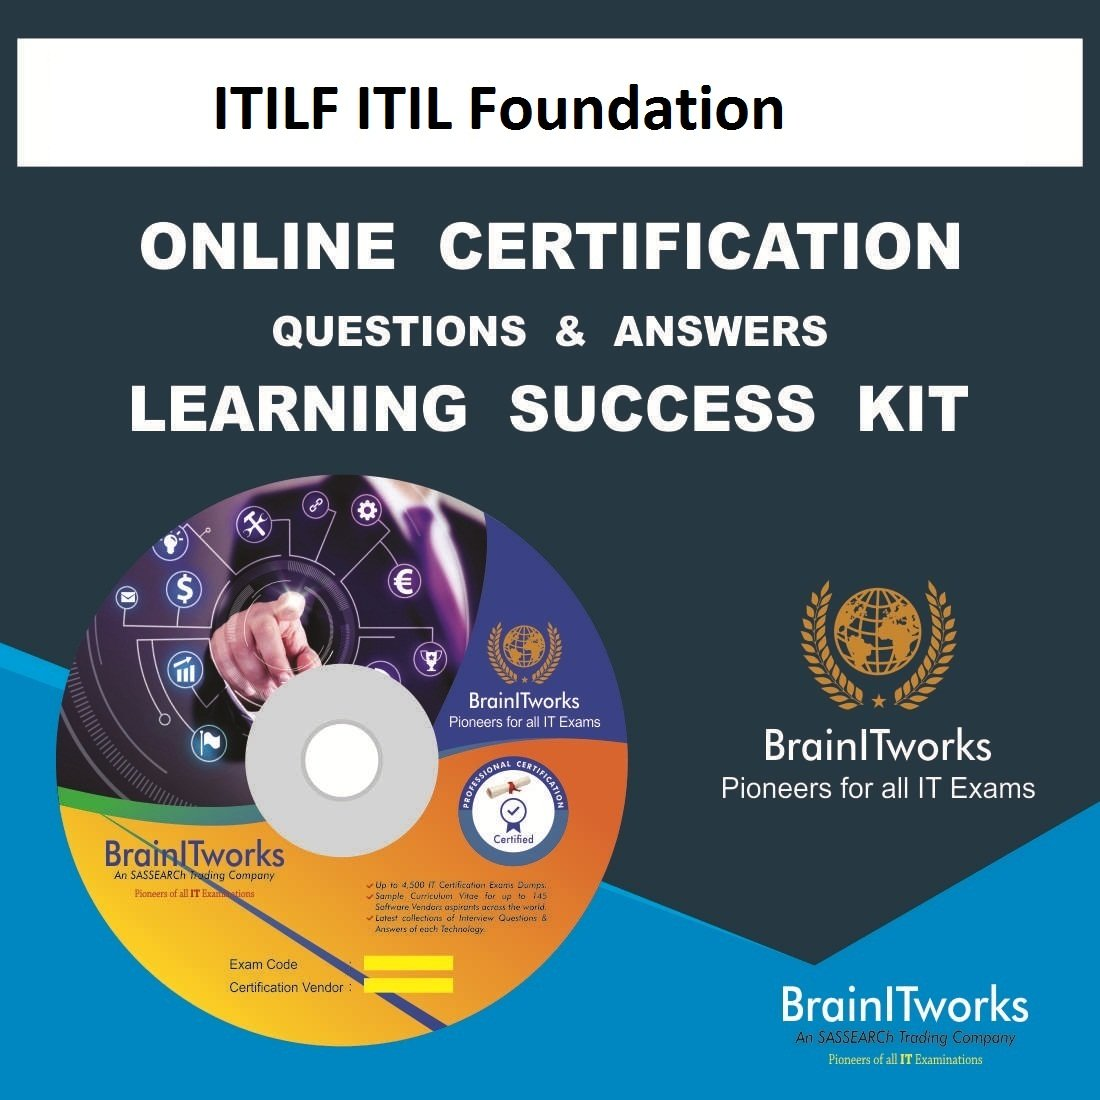 Itilf Itil Foundation Online Certification Learning Made Easy